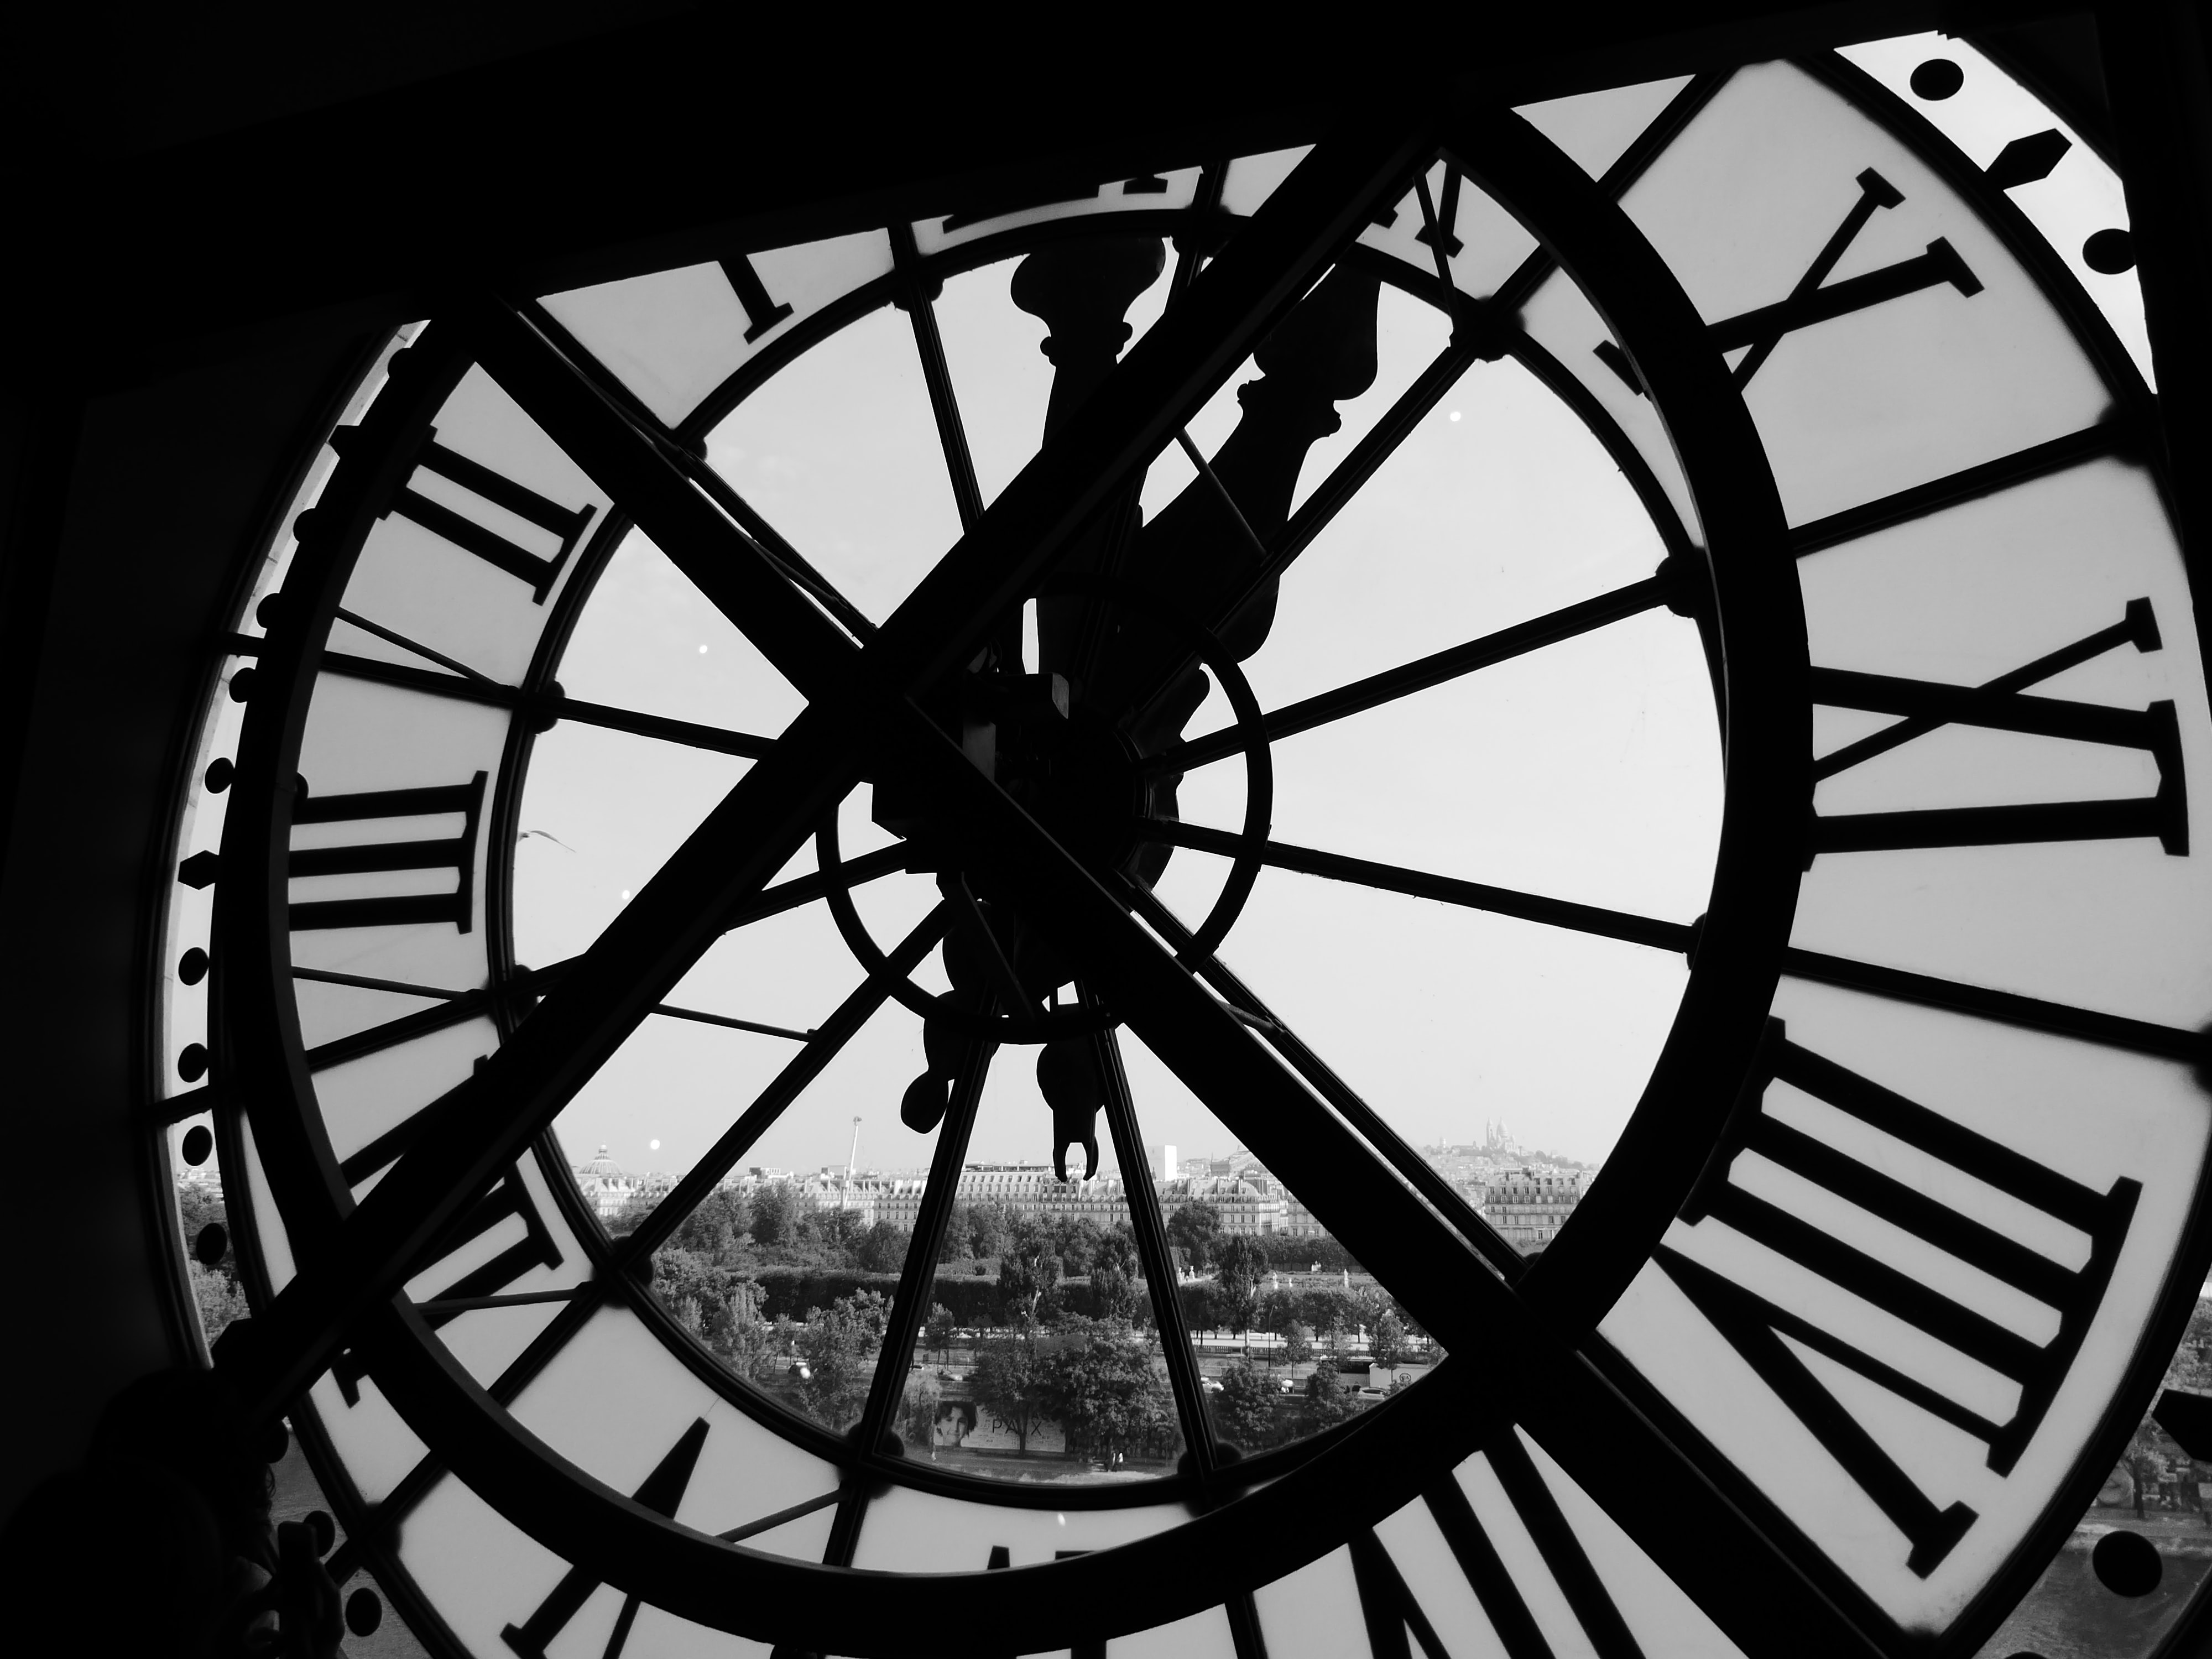 A black and white shot from behind a clock looking out into Paris